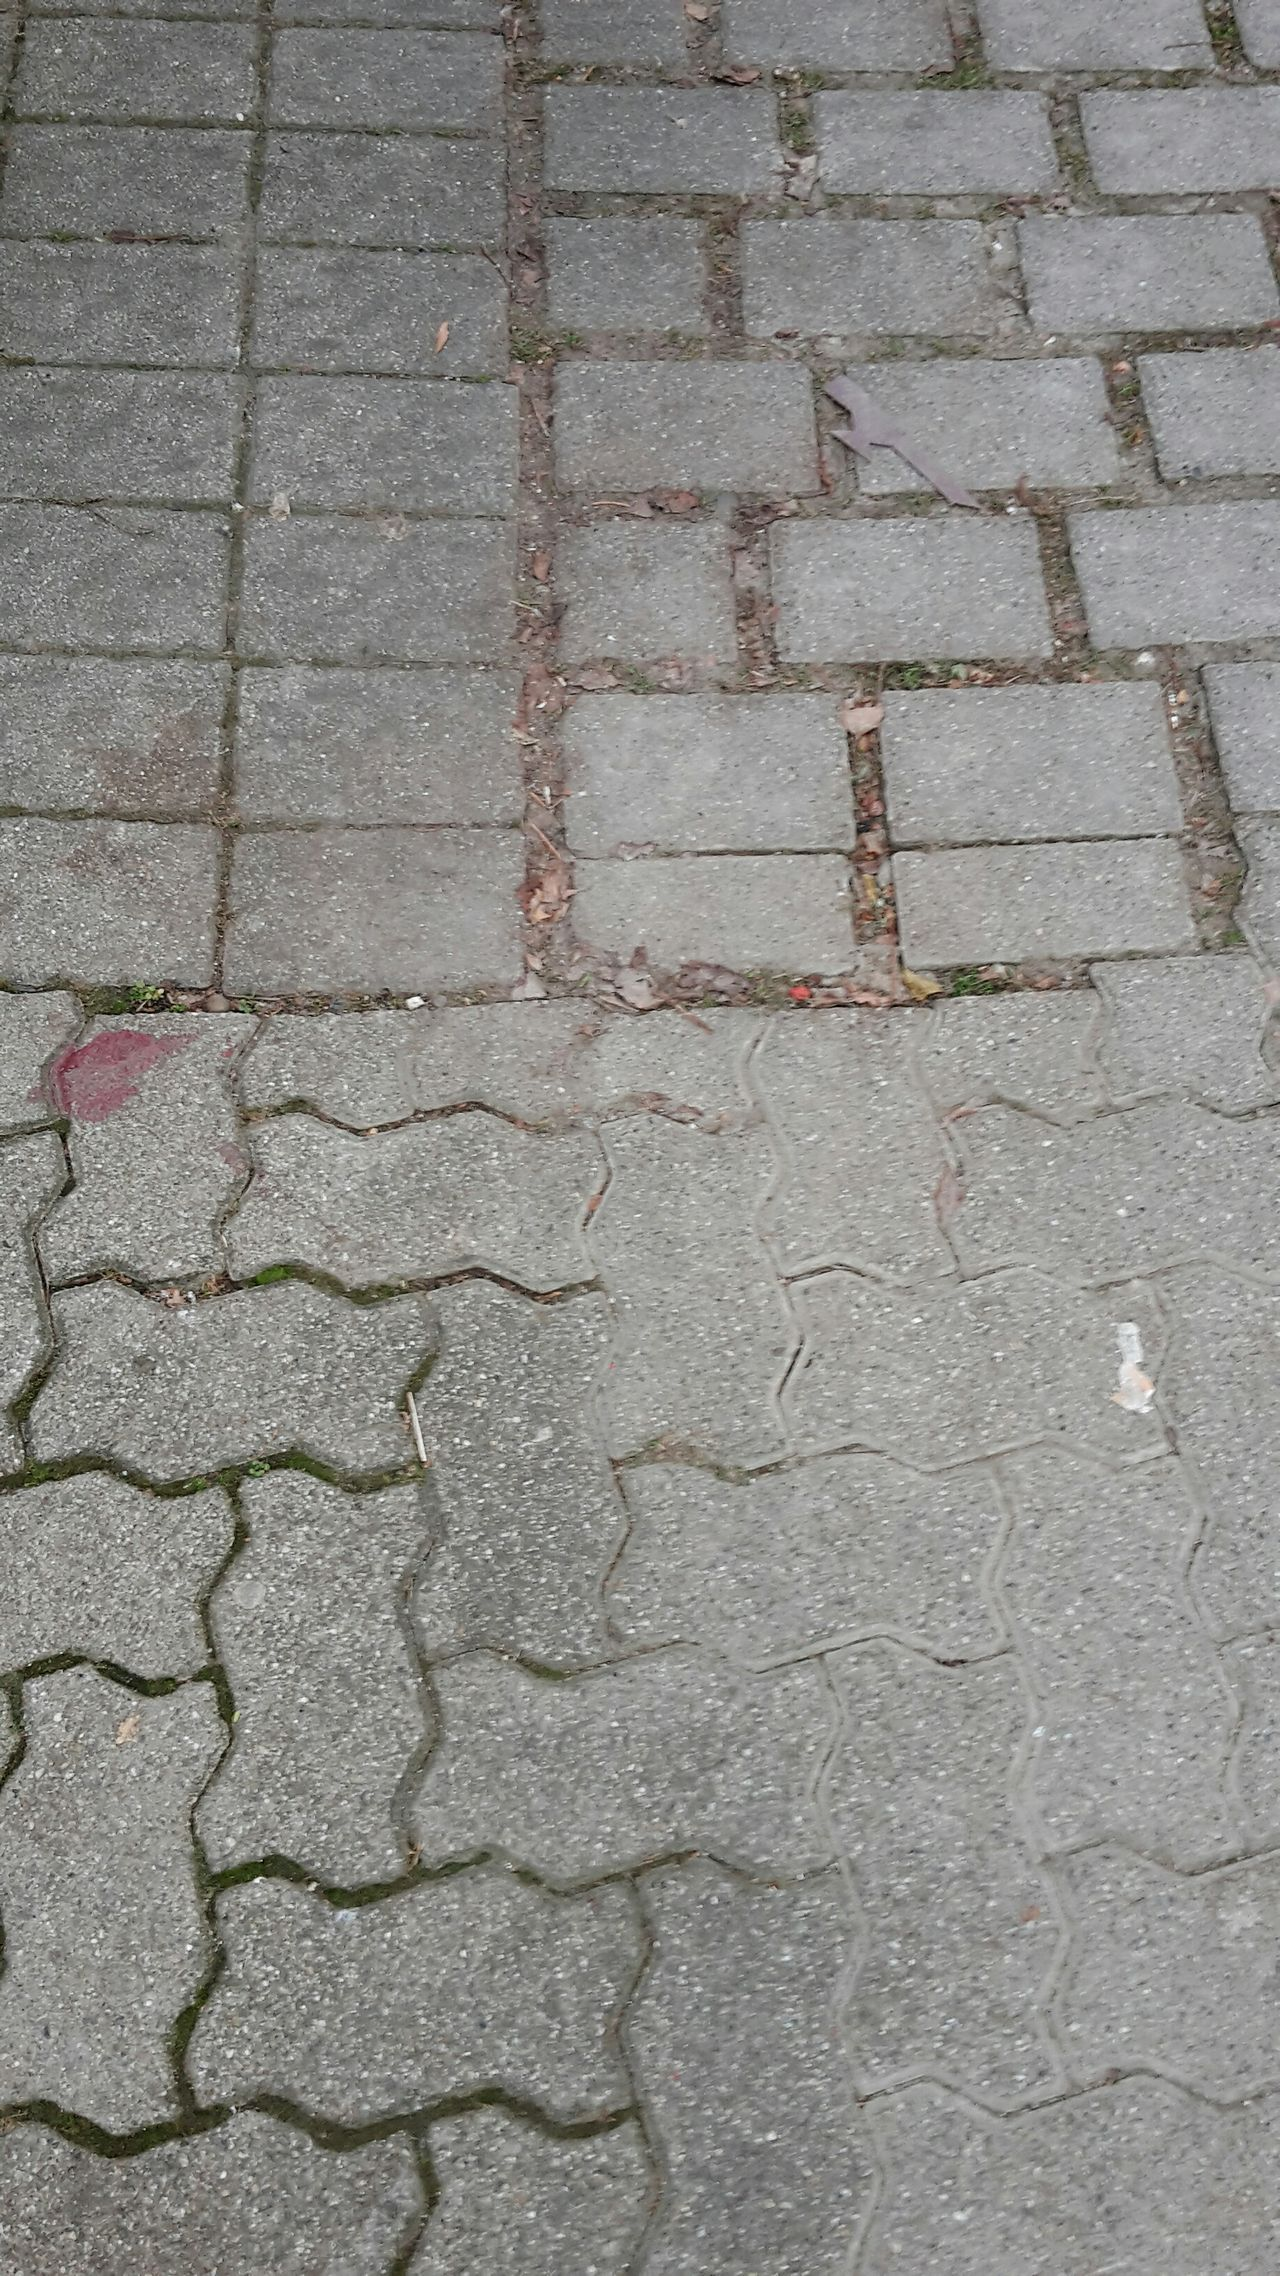 Bodenbelag Pflastersteine Structures & Lines Abnutzung Muster Mix Alterung Patterns & Textures Plaster Pattern Muster Pavement Stone Pavement Patterns Pavement Vielfalt